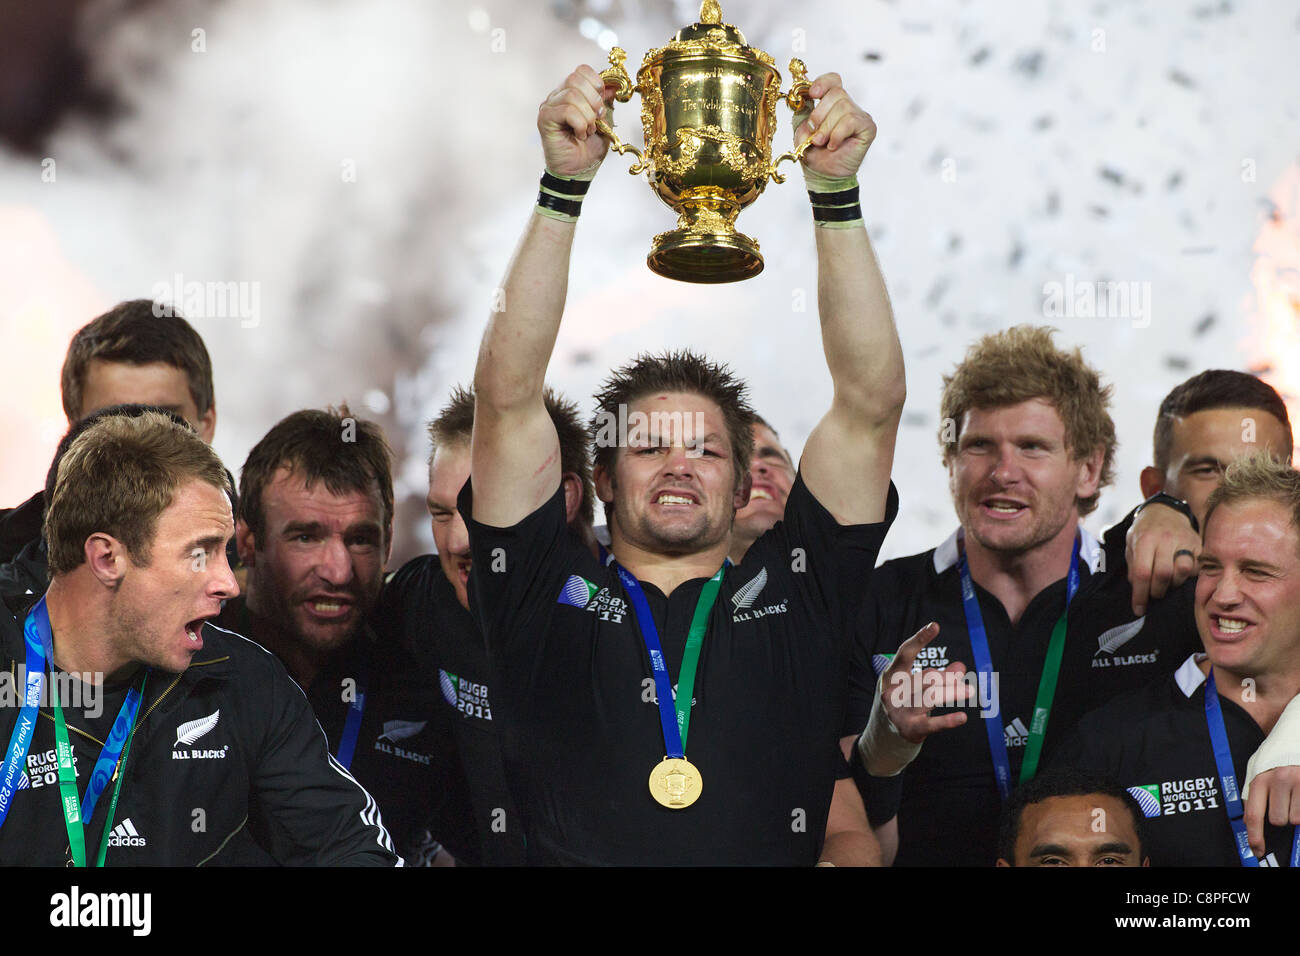 Richie Mccaw Stock Photos Richie Mccaw Stock Images Alamy